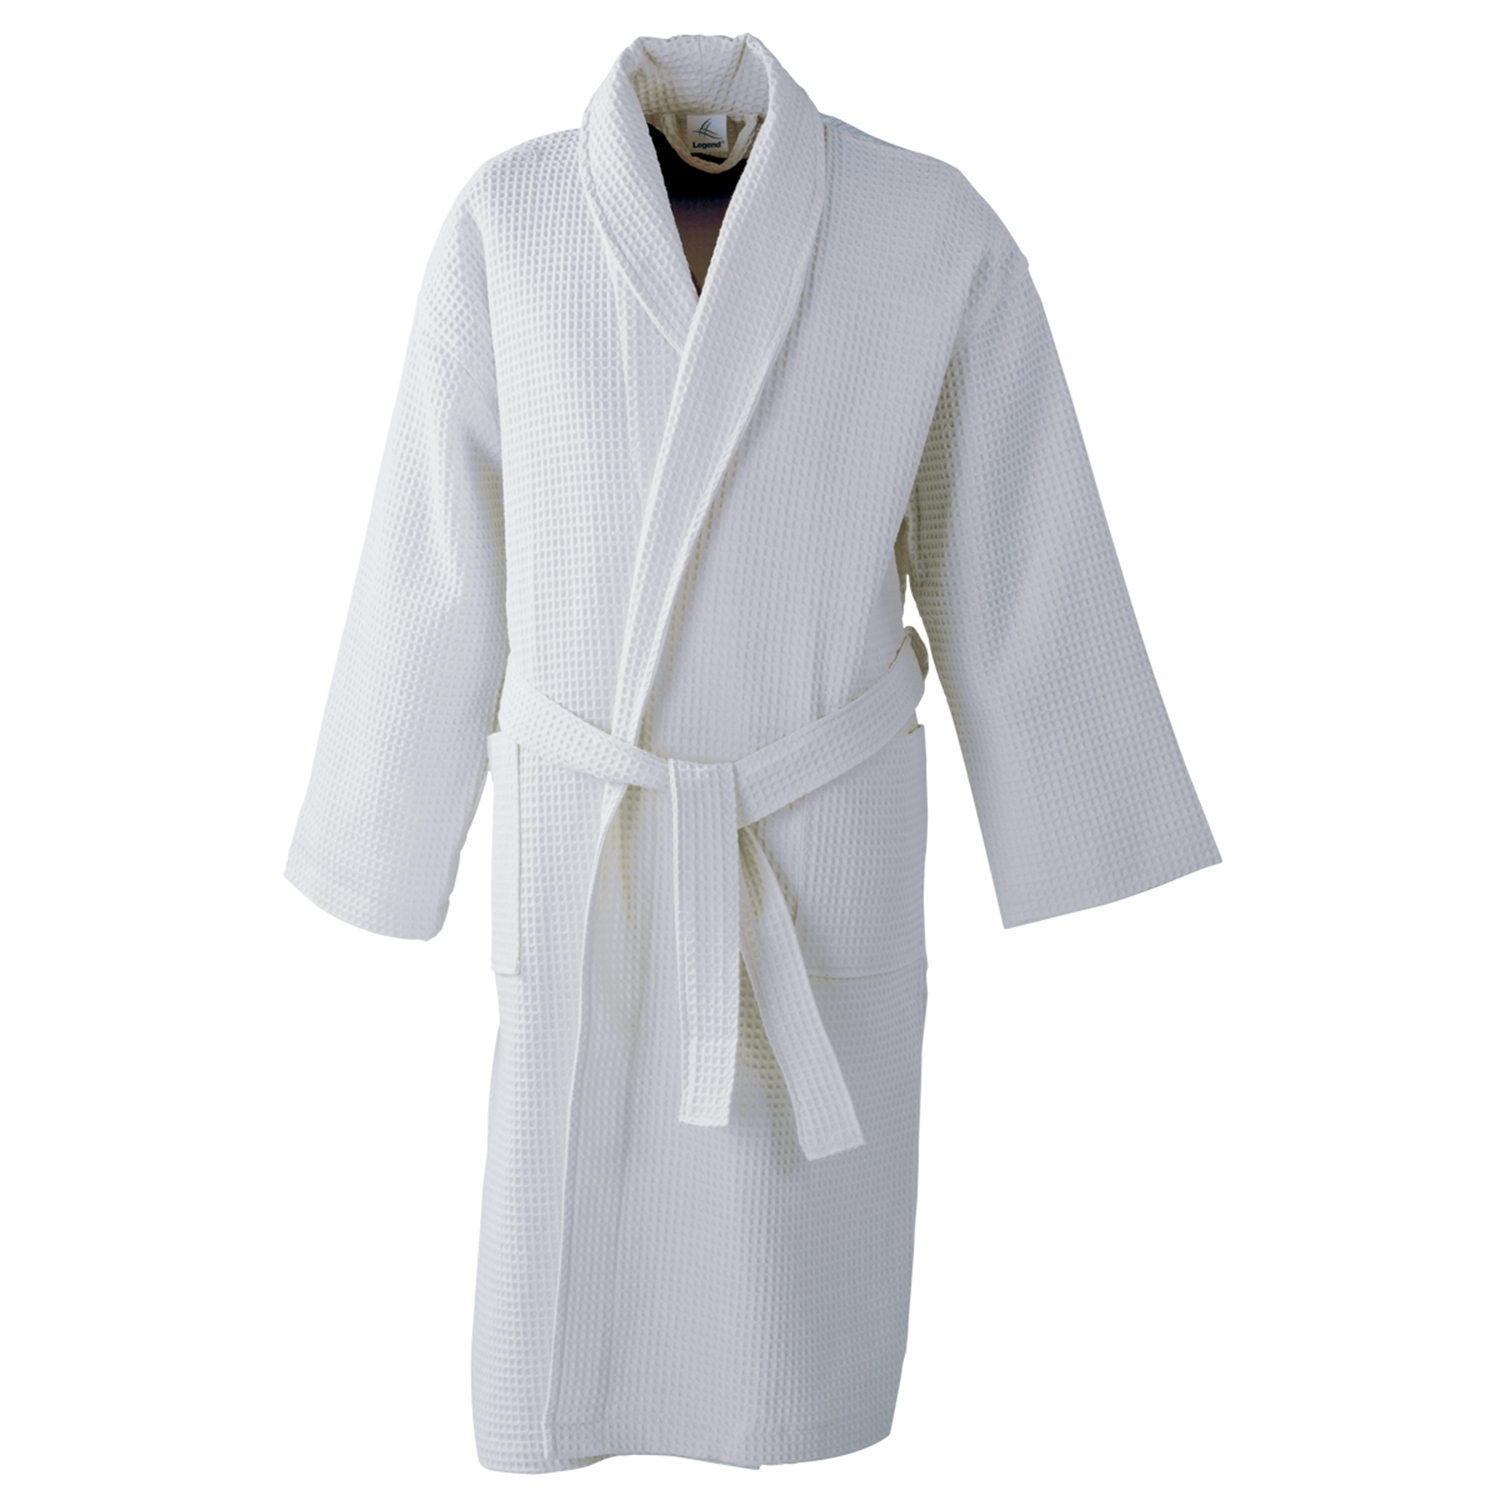 Bathrobe: Sahi And Sons